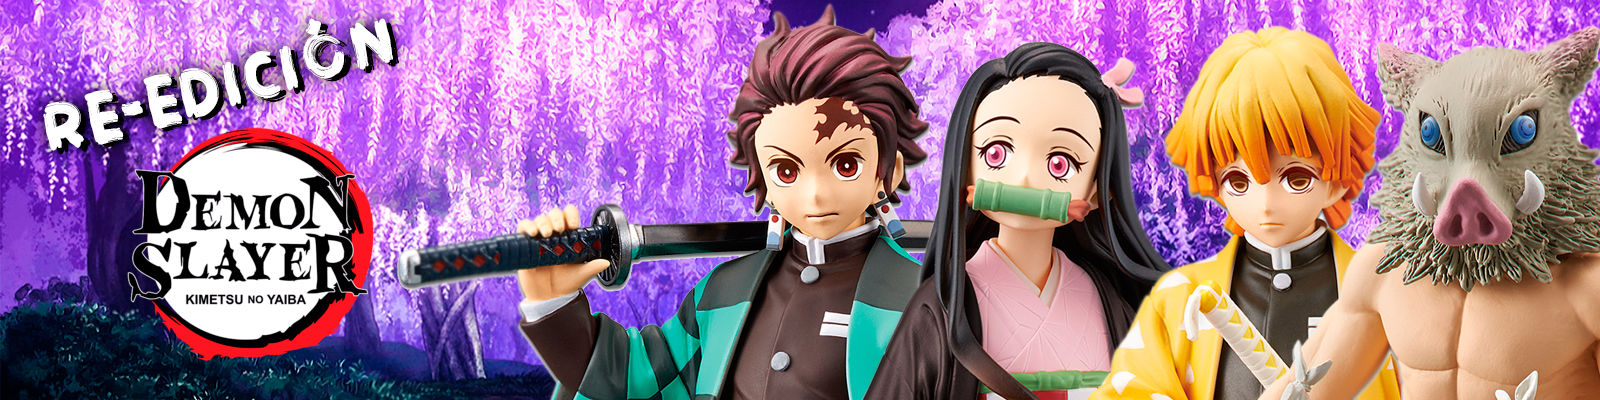 Kimetsu-no-yaiba-re-edicion-banpresto